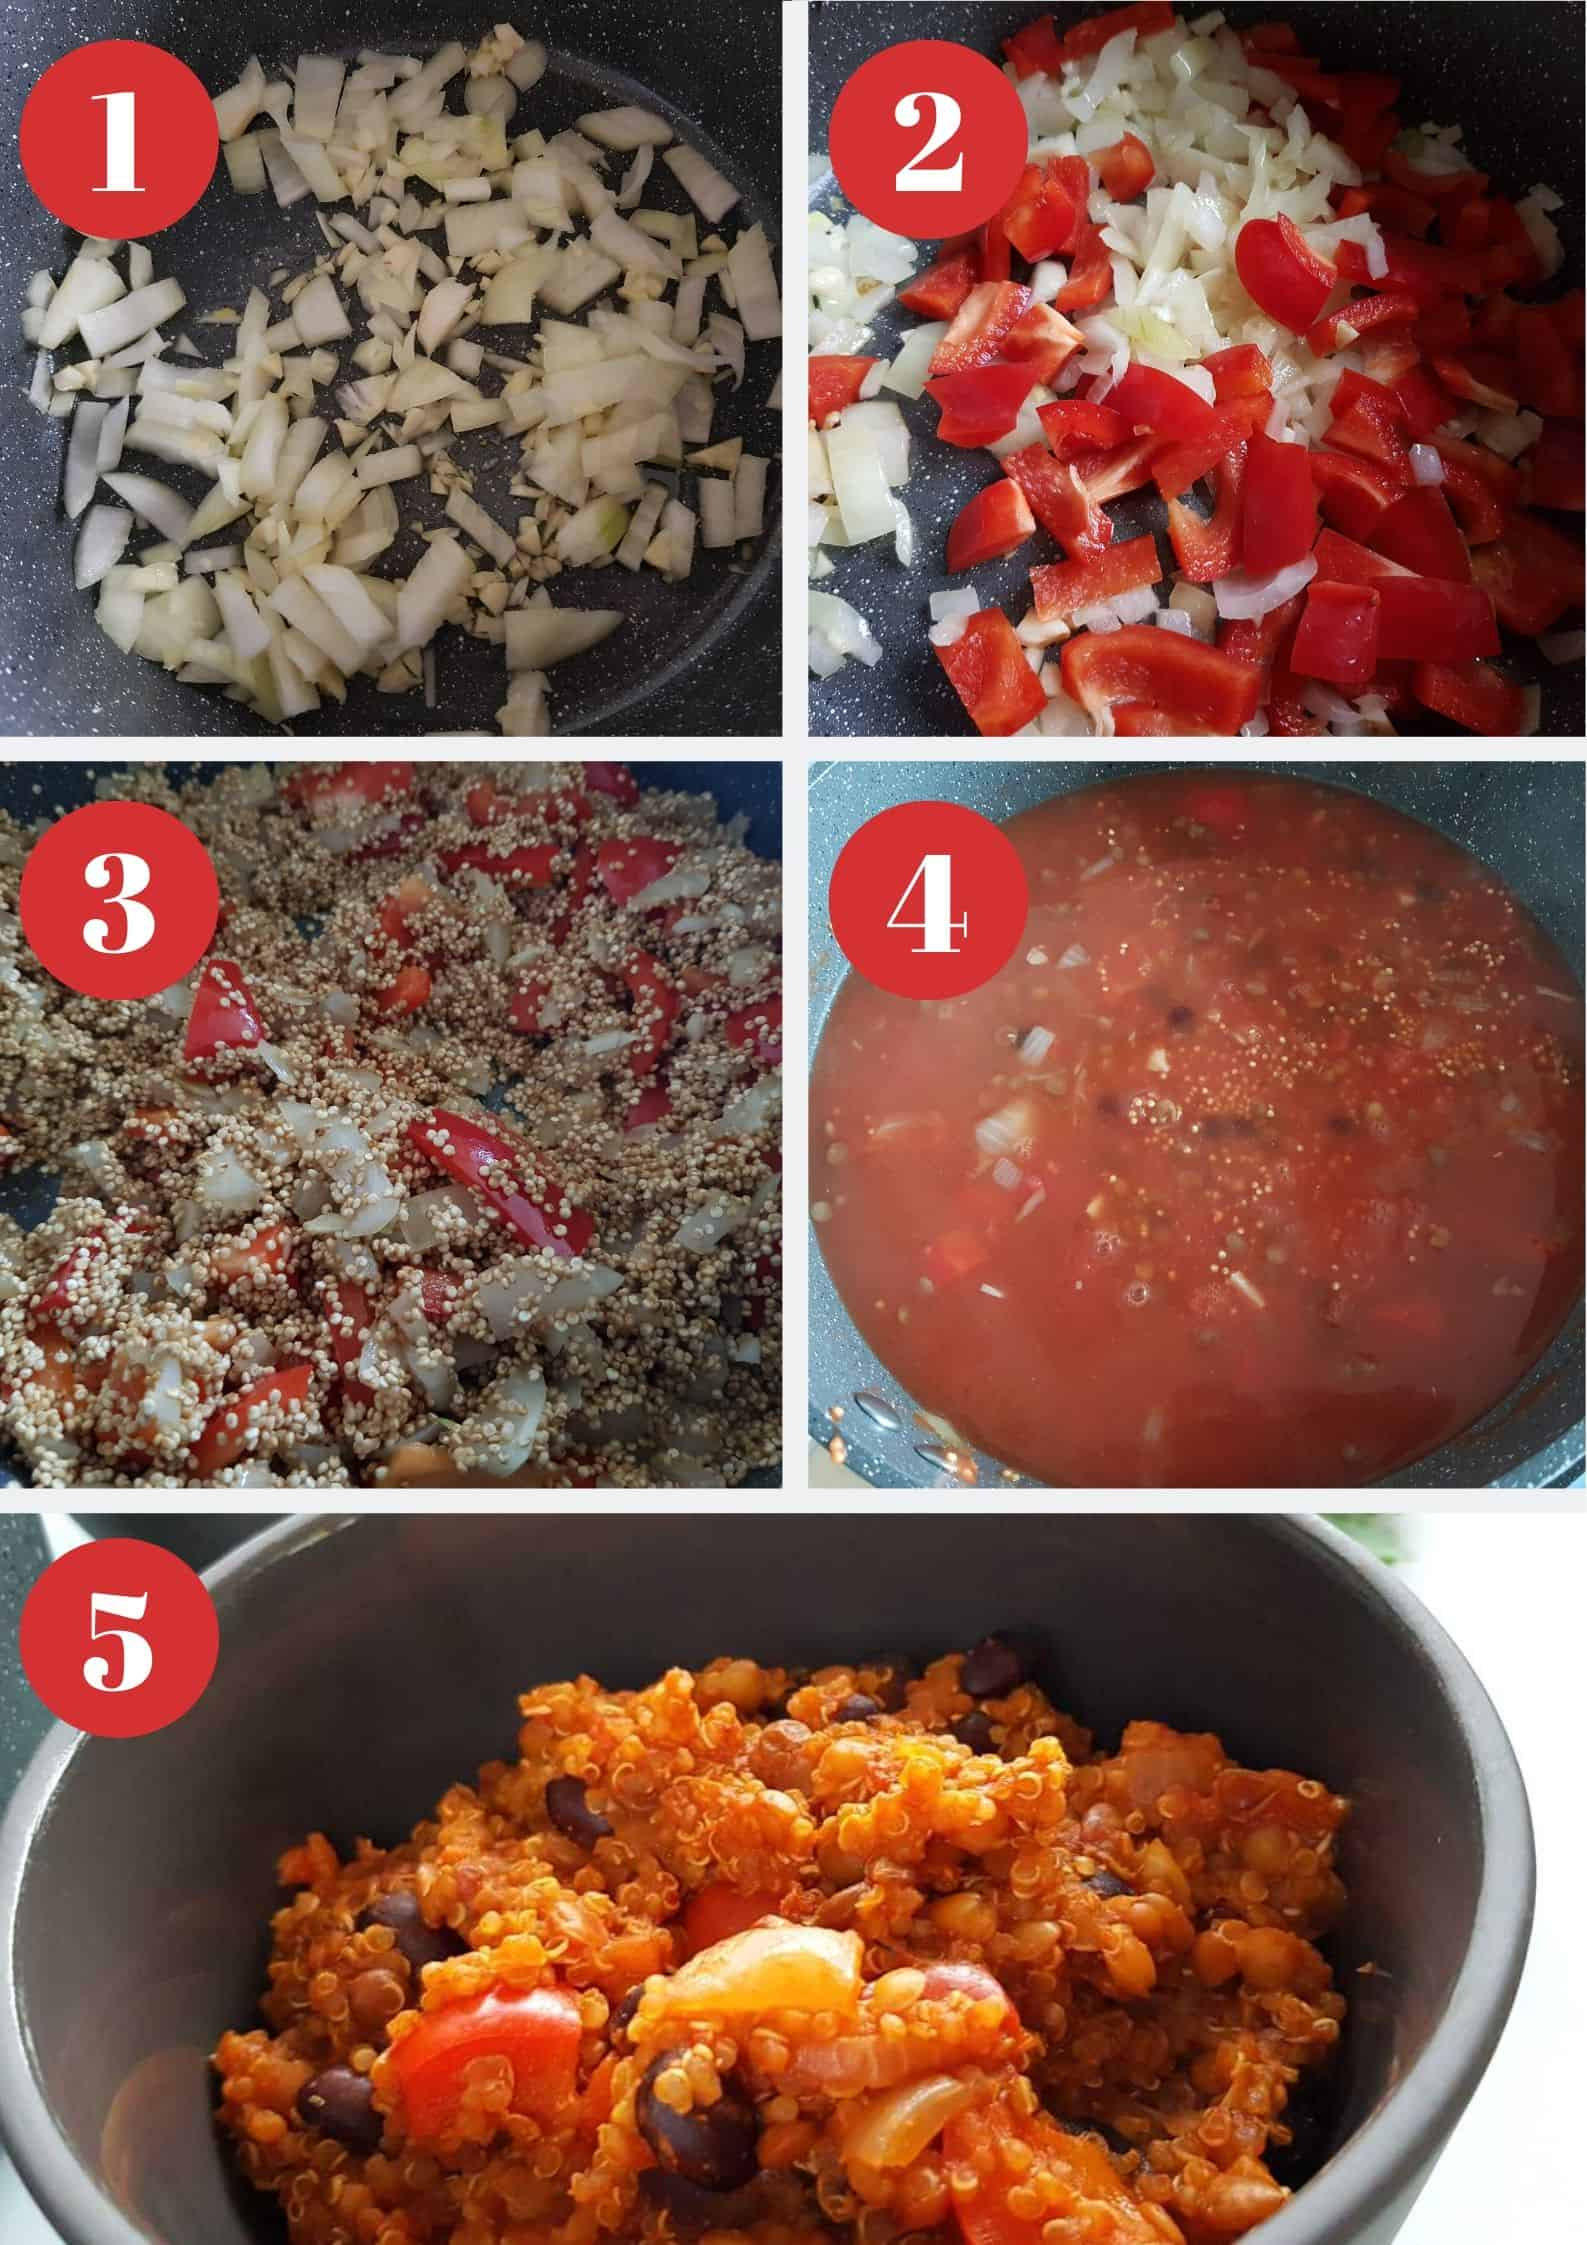 Infographic showing How to make vegetarian chili with quinoa.